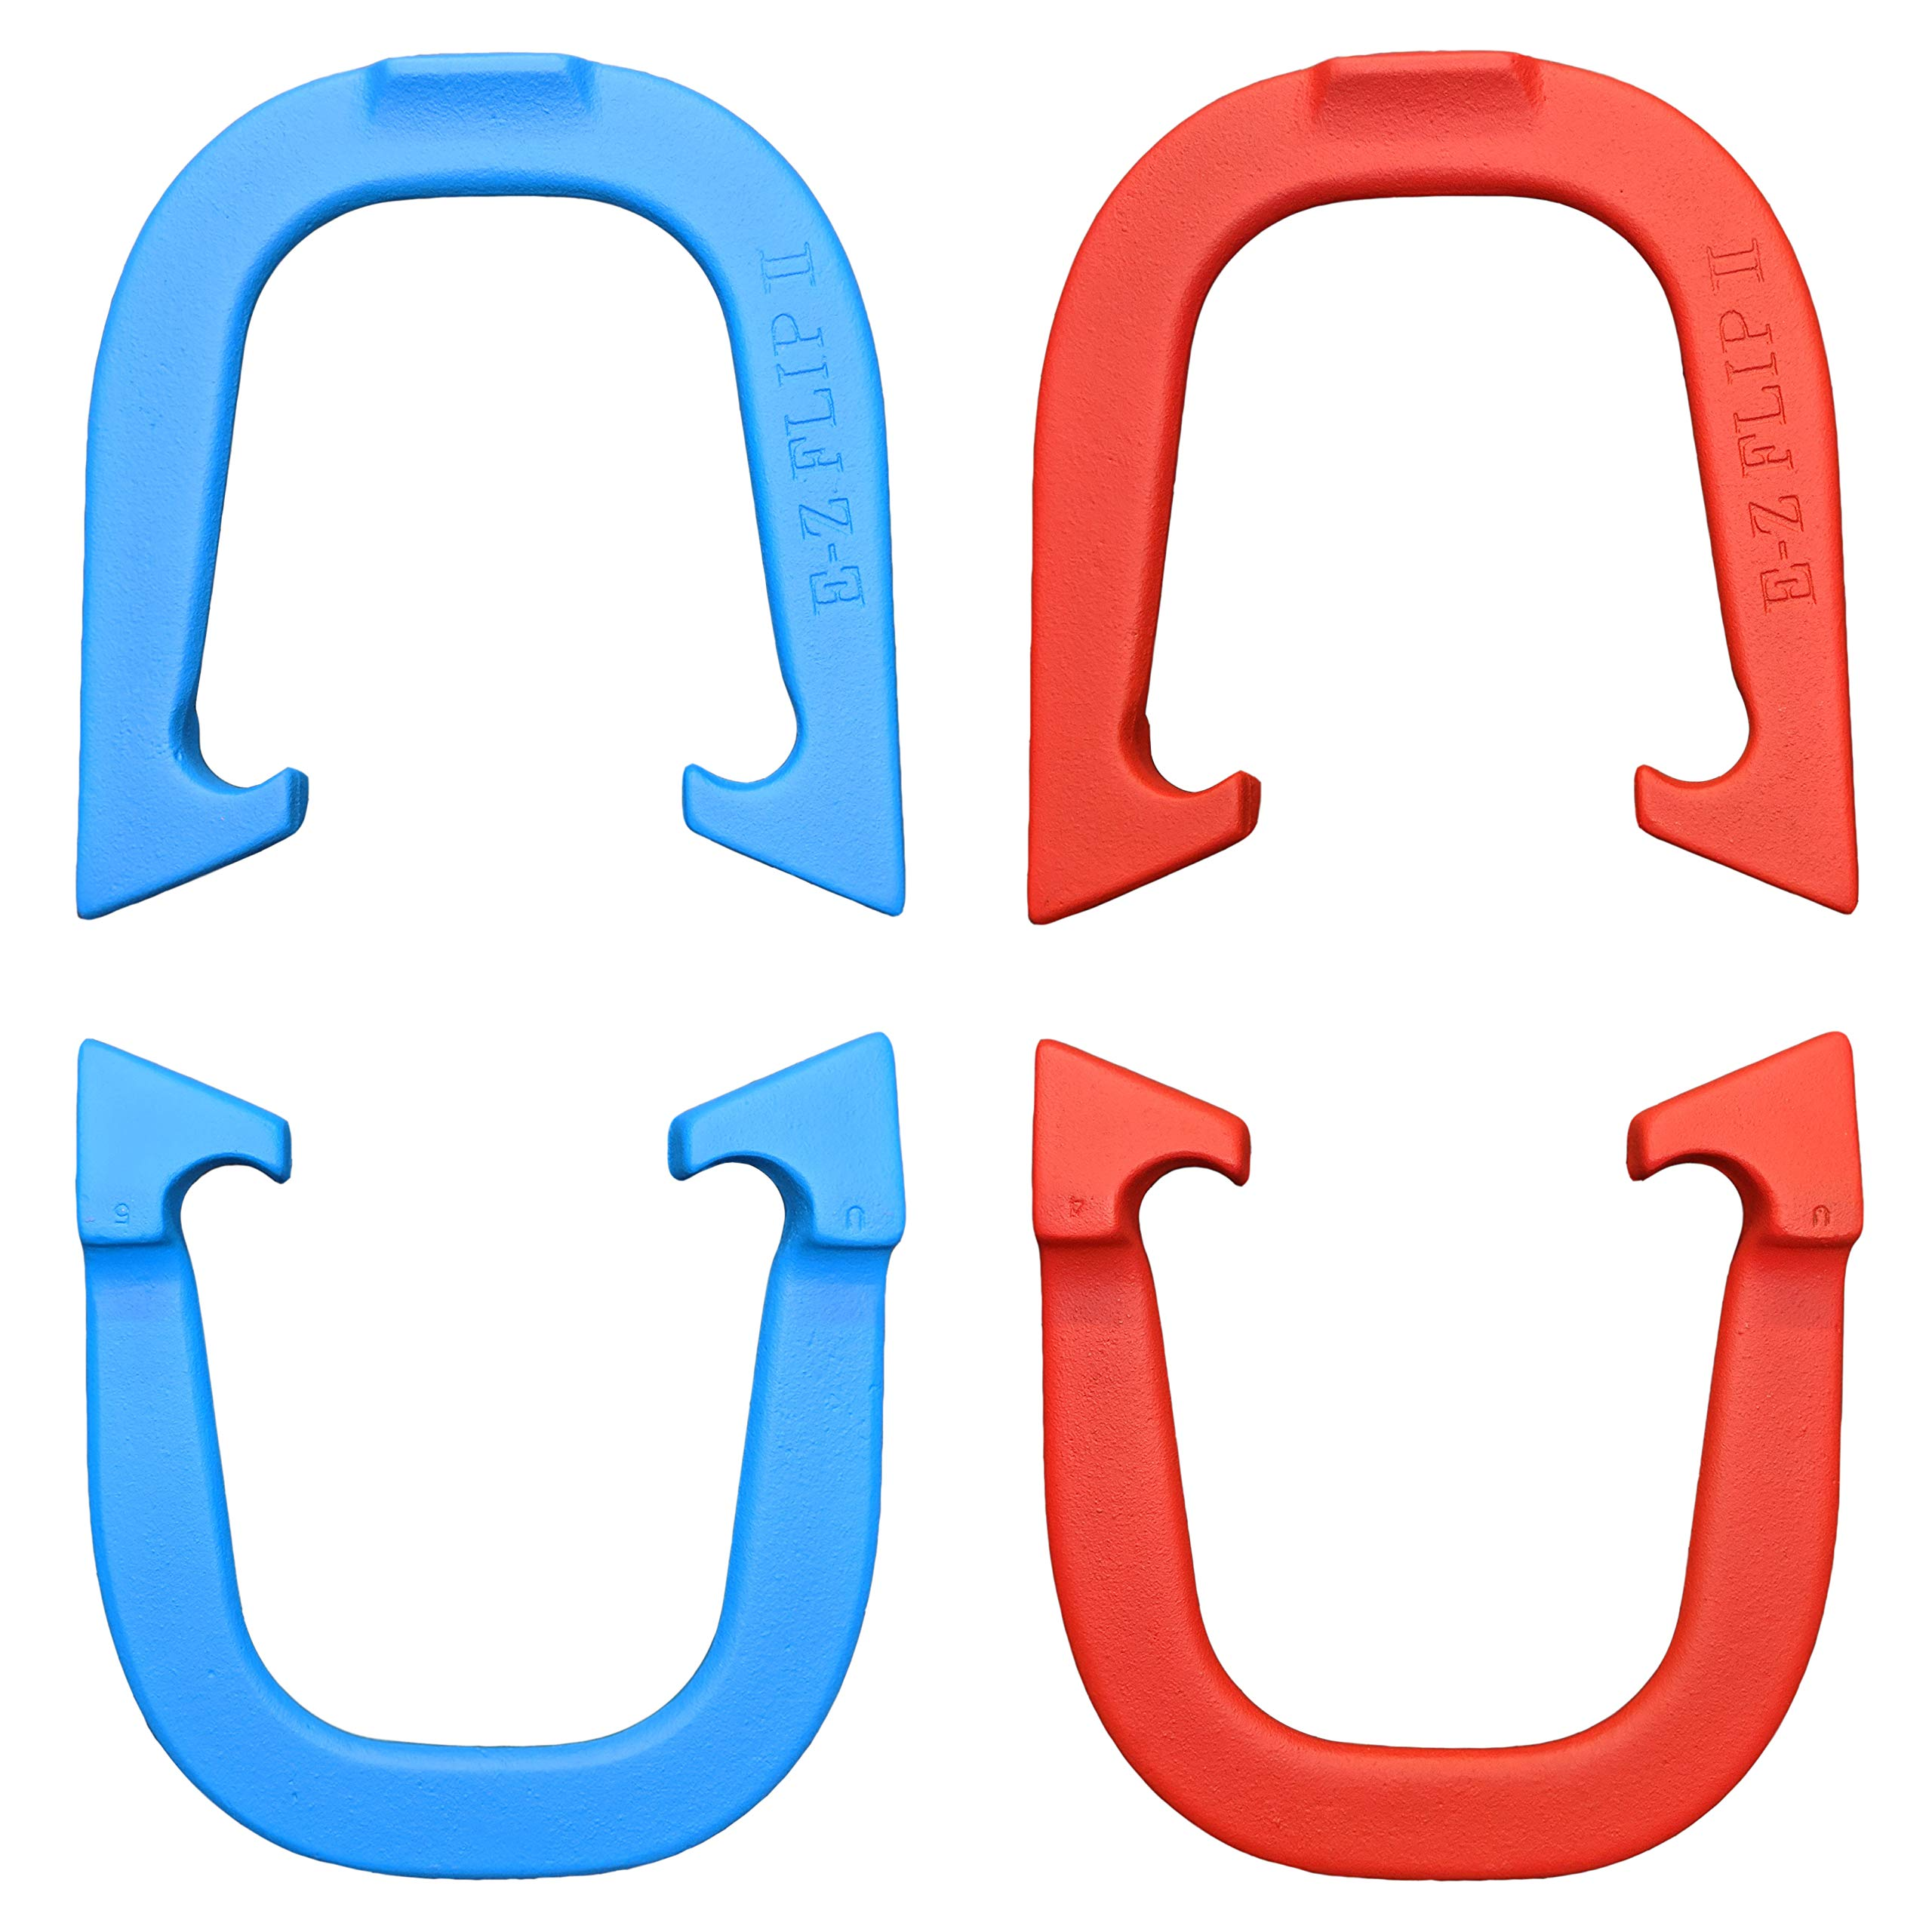 E-Z Flip II Professional Pitching Horseshoes Set- Made in The USA (Red & Blue- Two Pair Set (4 Shoes)) by Thoroughbred Horseshoes